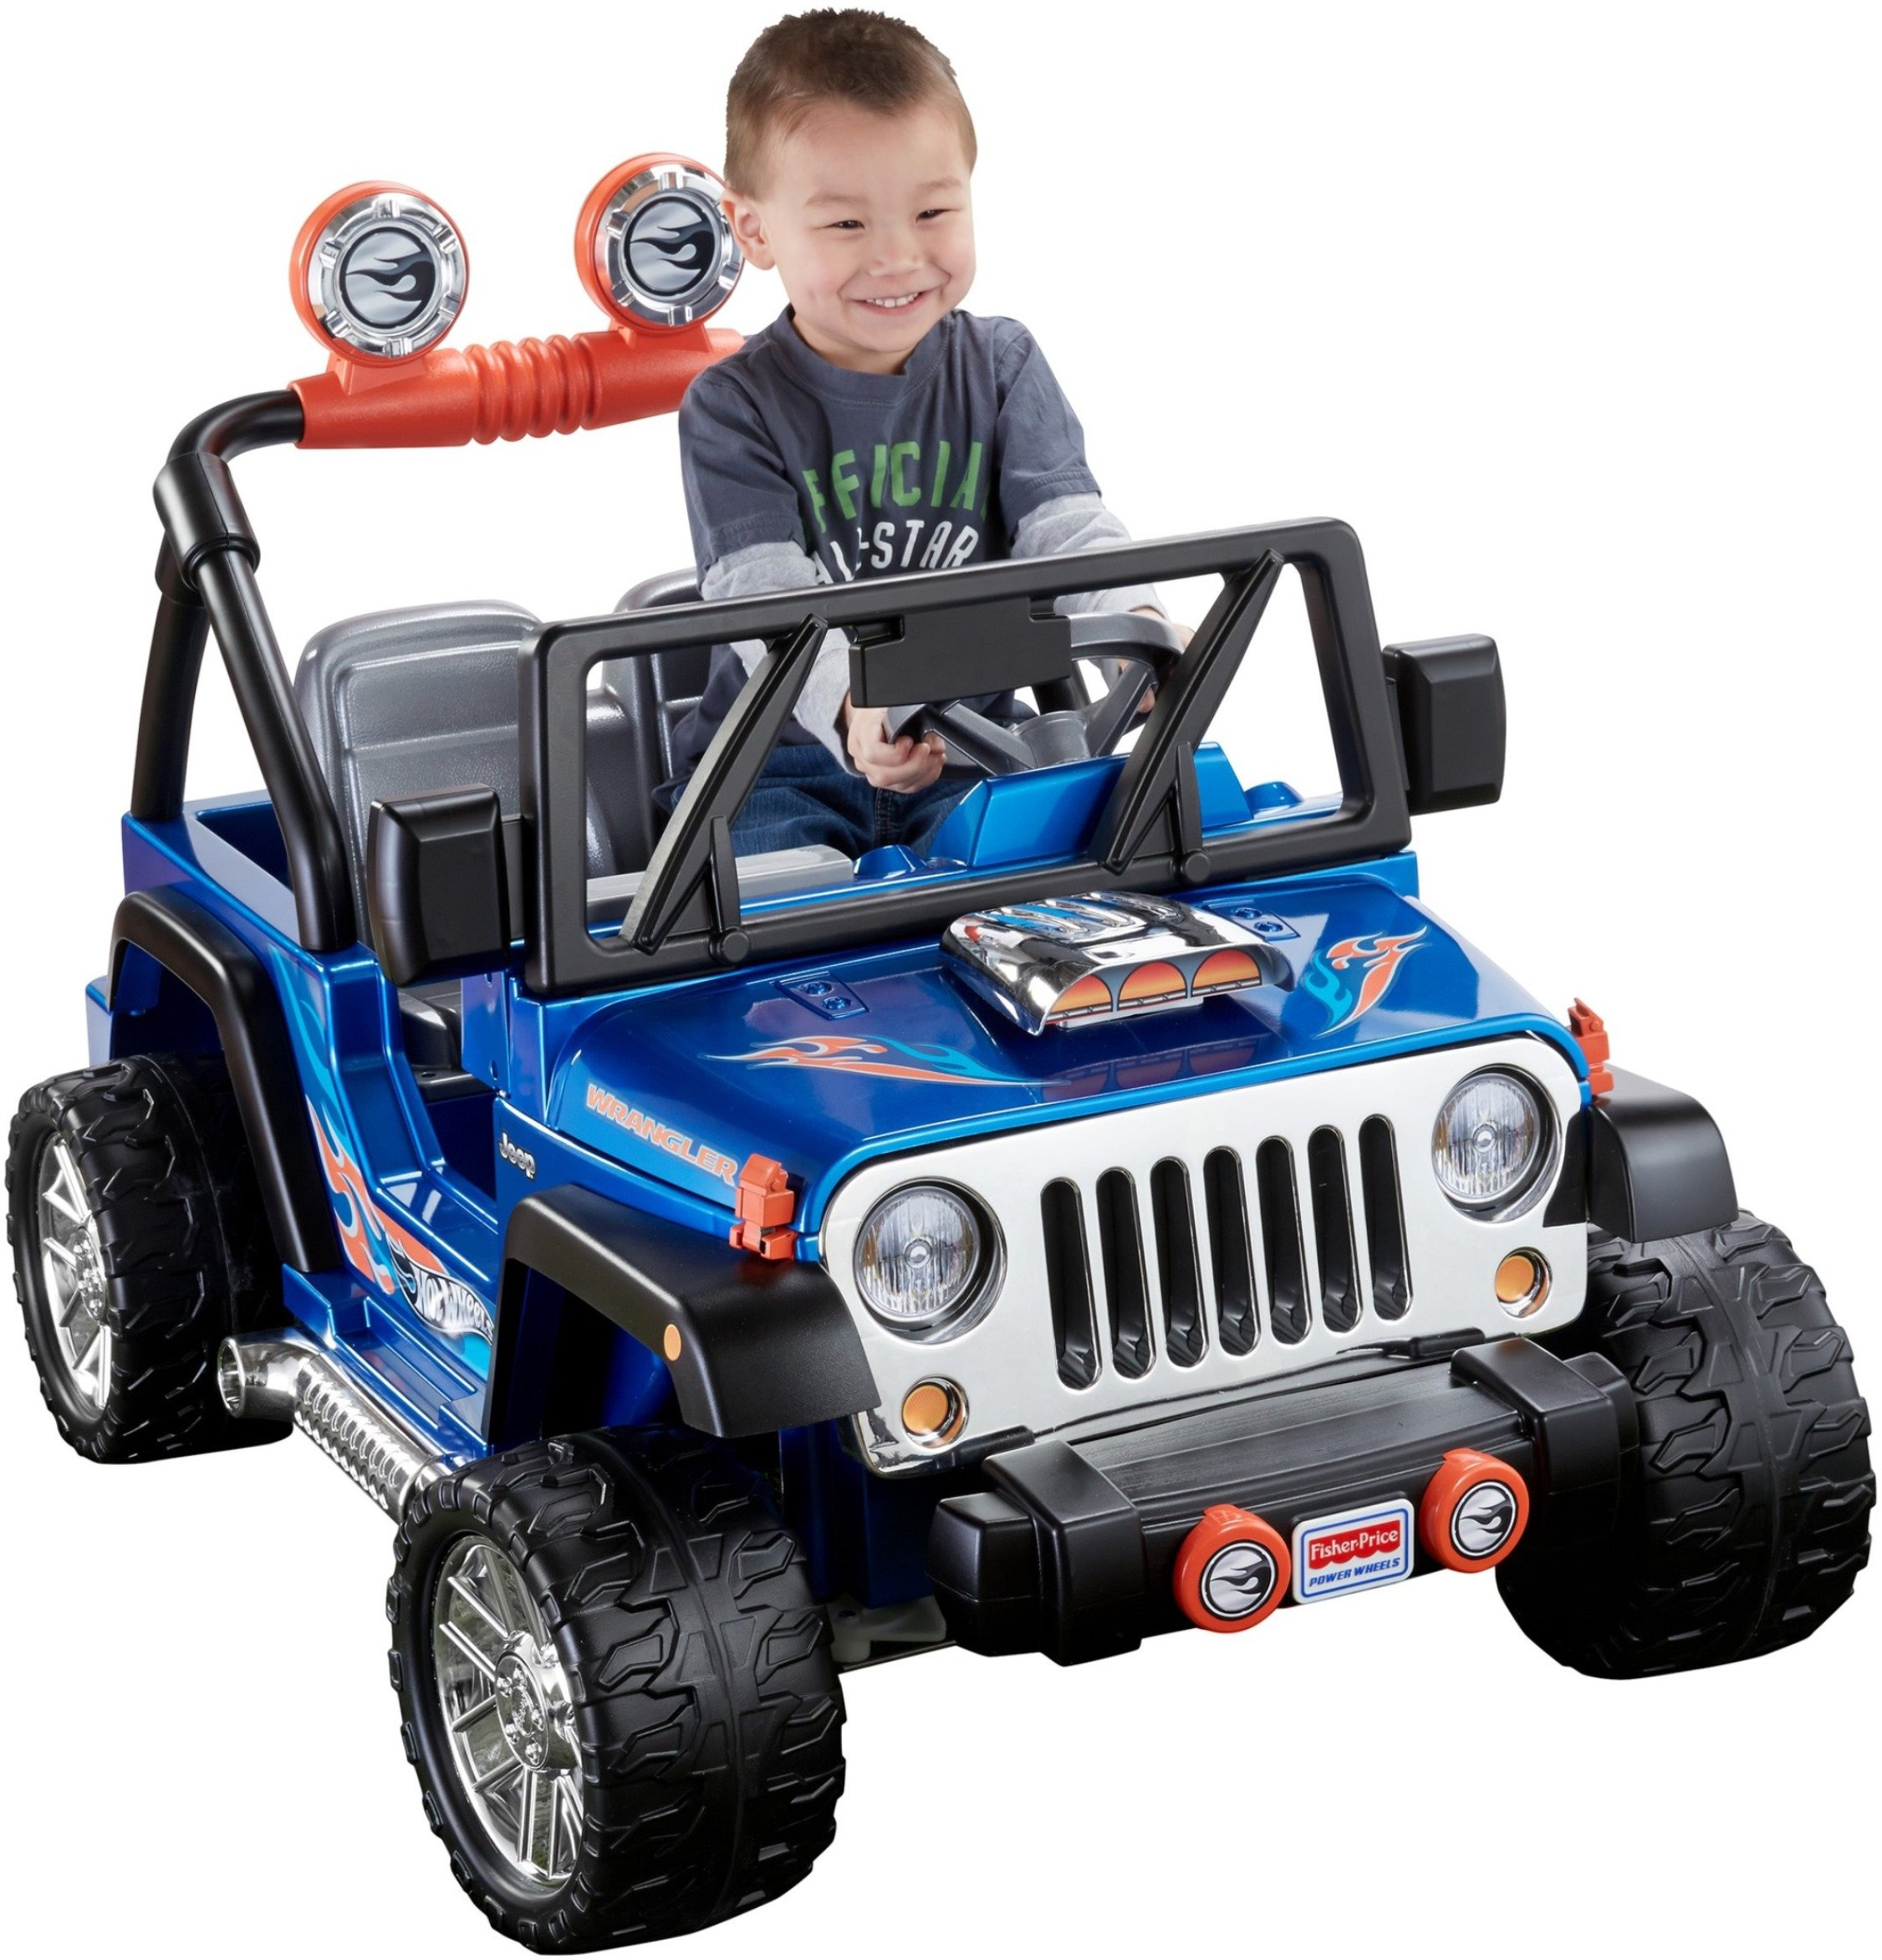 Power Wheels Hot Wheels Jeep Wrangler, Blue (12V) by Power Wheels (Image #10)